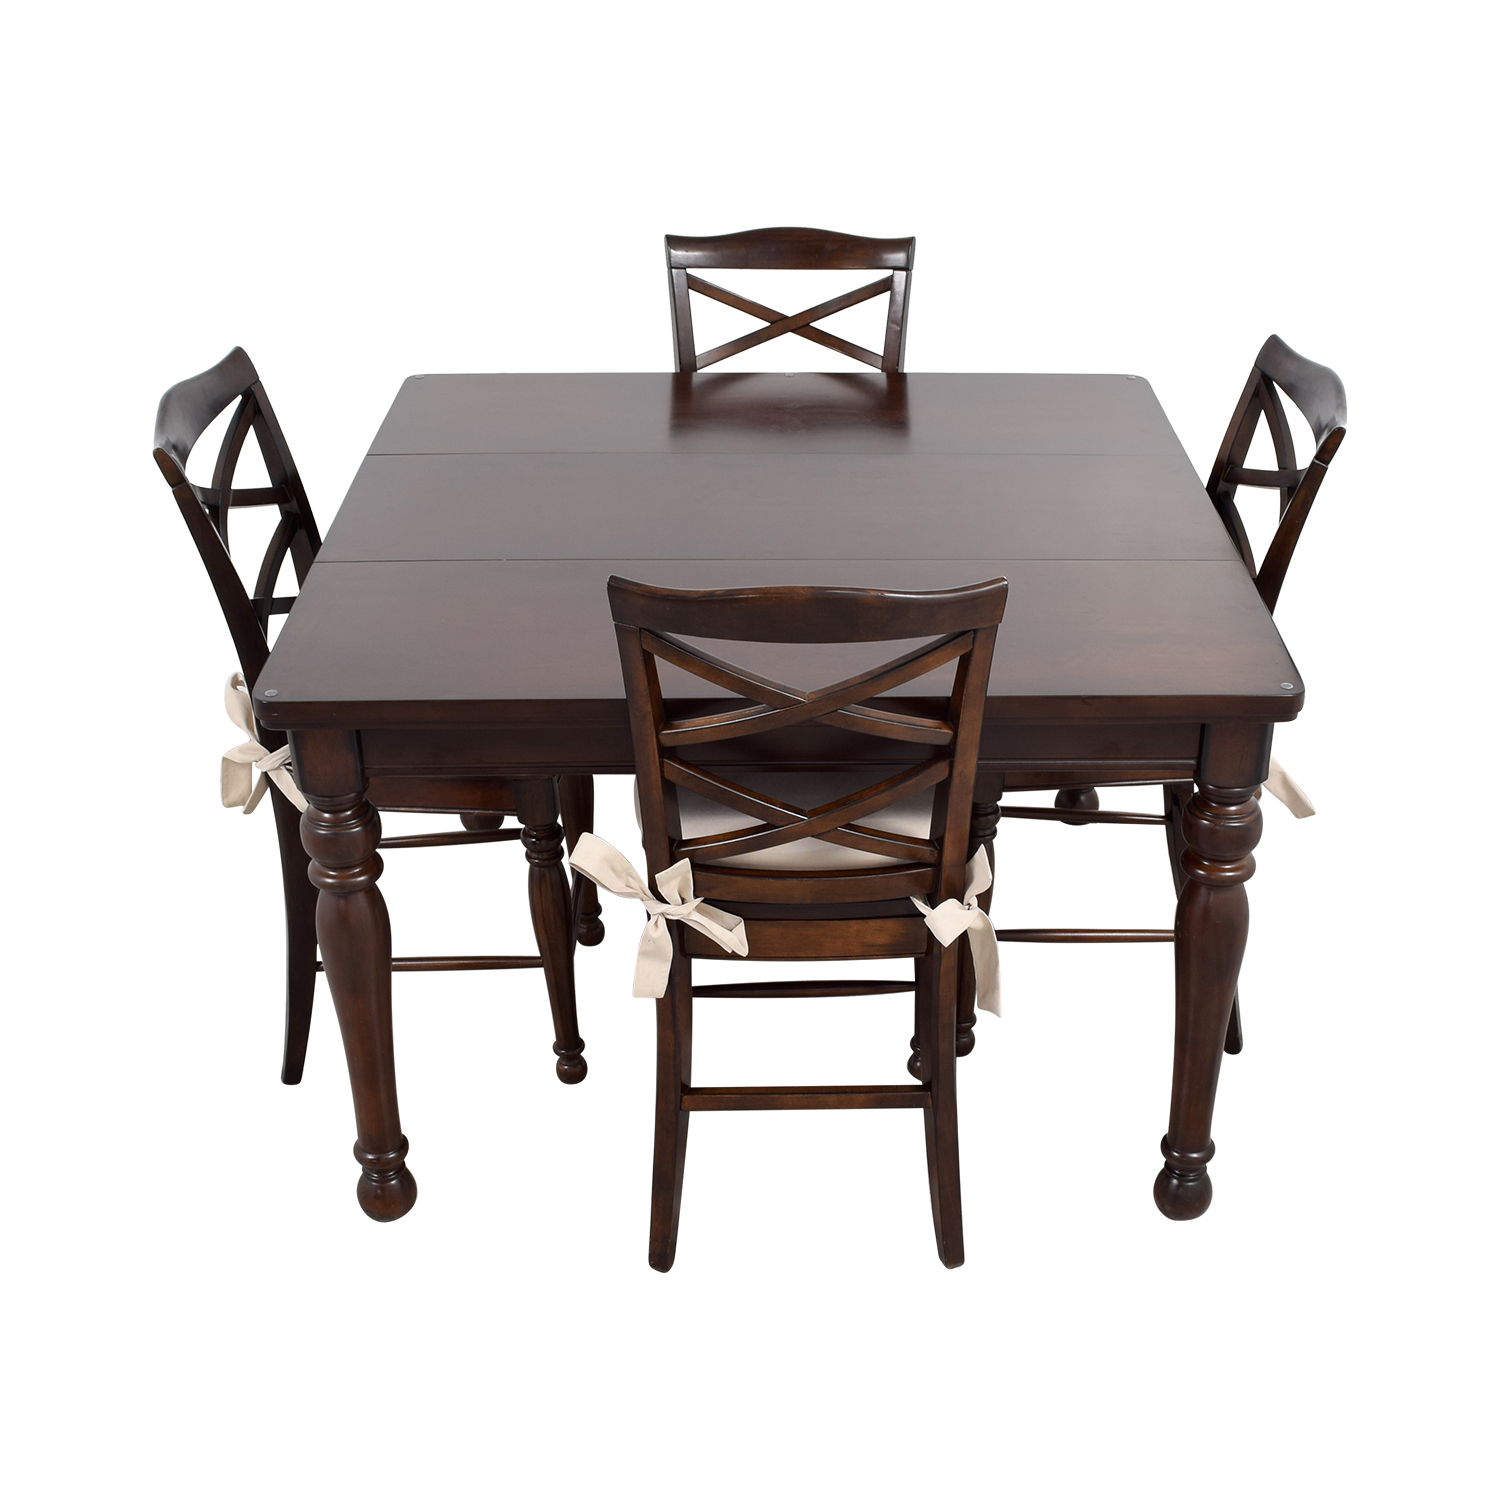 ... Ashley Furniture Dark Wood Dining Set With Seat Cushions / Tables ...